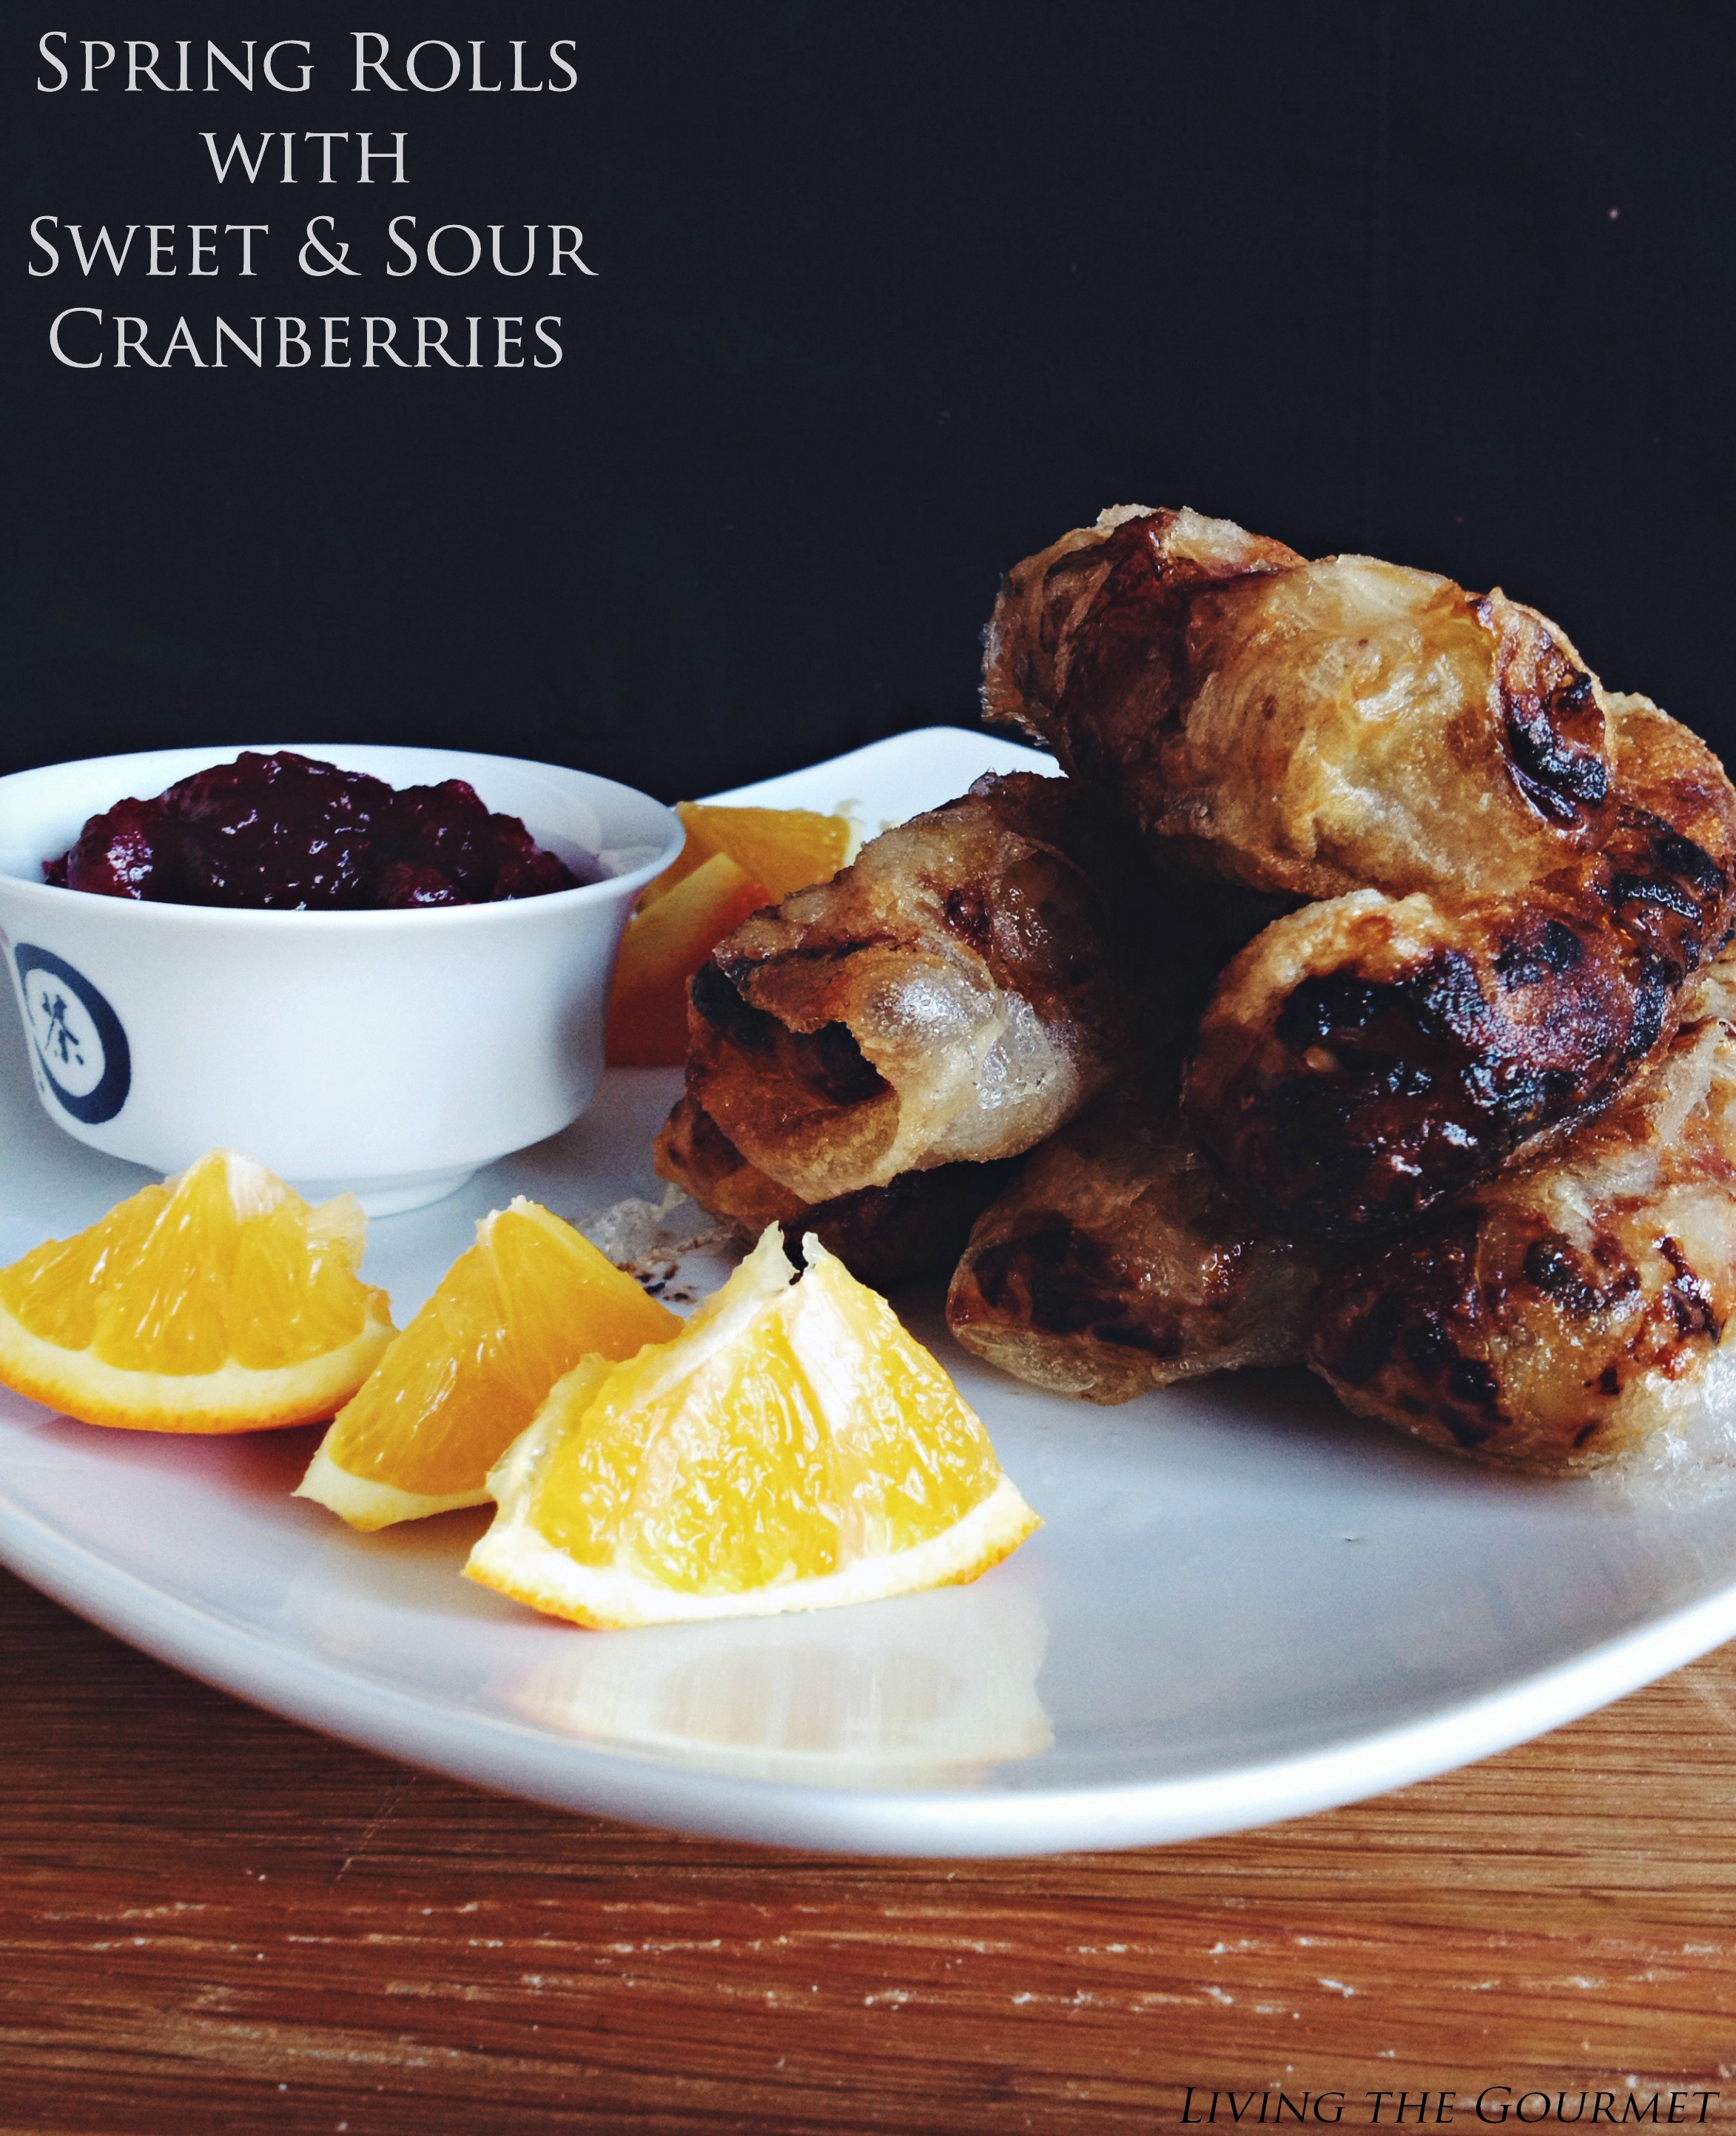 Living the Gourmet: Spring Rolls w/ Sweet & Sour Cranberries